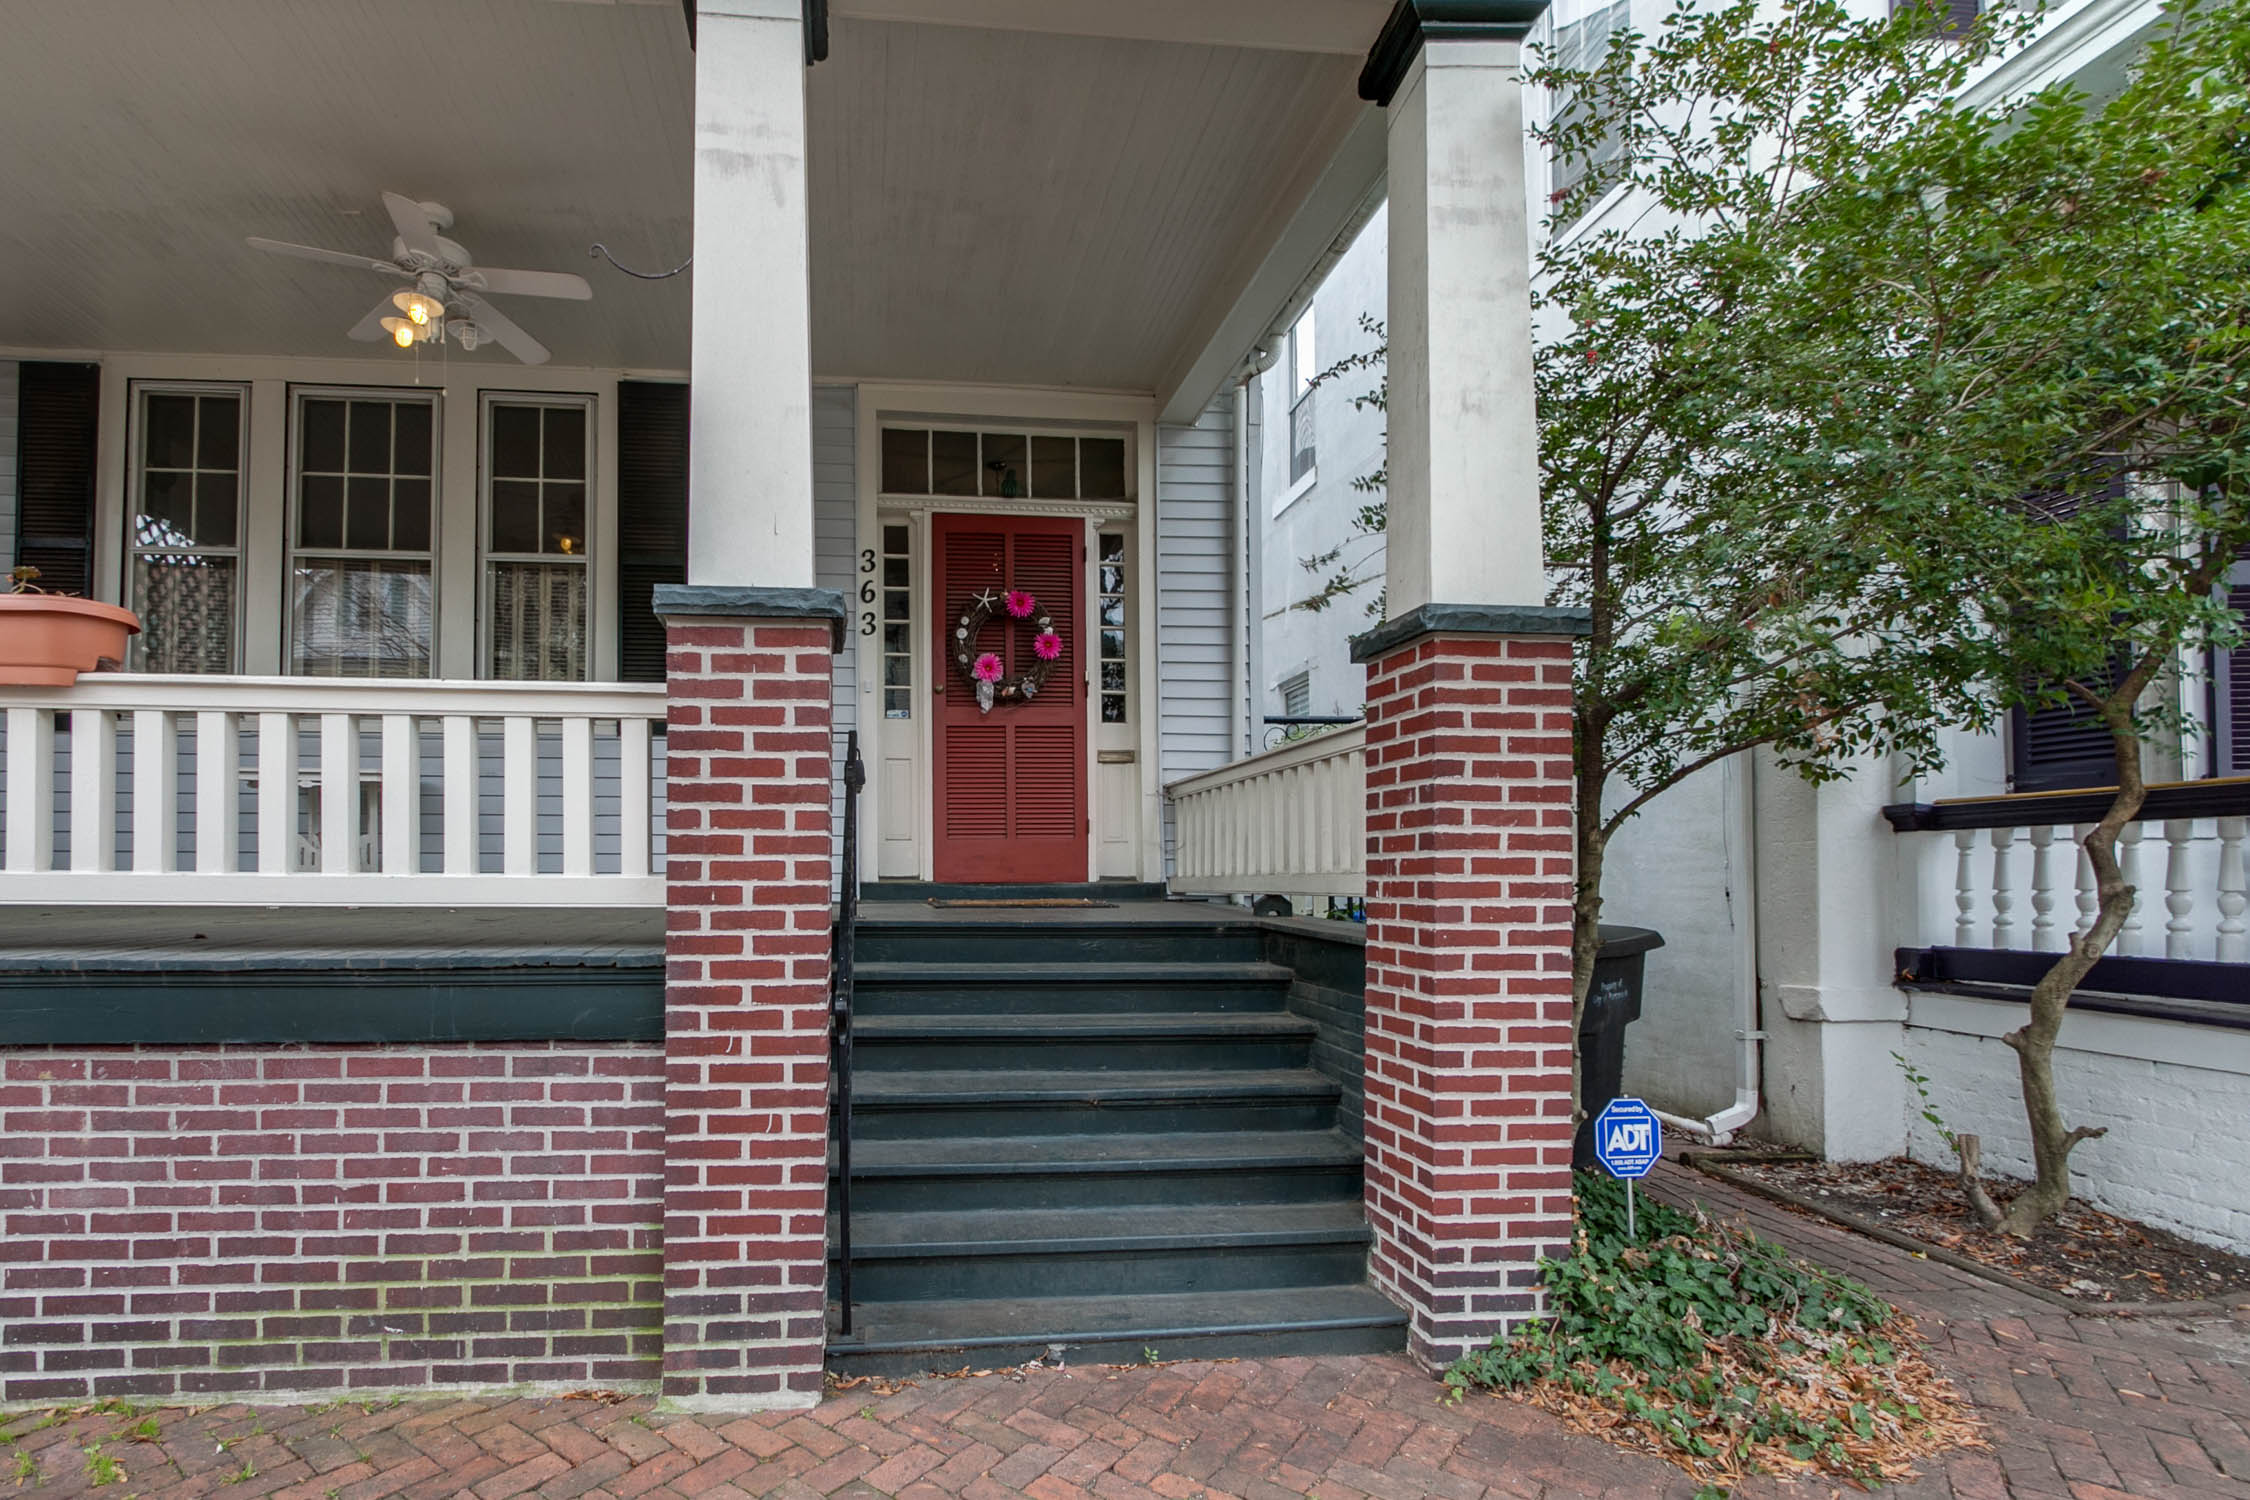 363 Middle Street Portsmouth VA 23704 listed by Isabel Ruiz of the Hampton Roads Military Relocation Team is CURRENTLY UNDER CONTRACT!